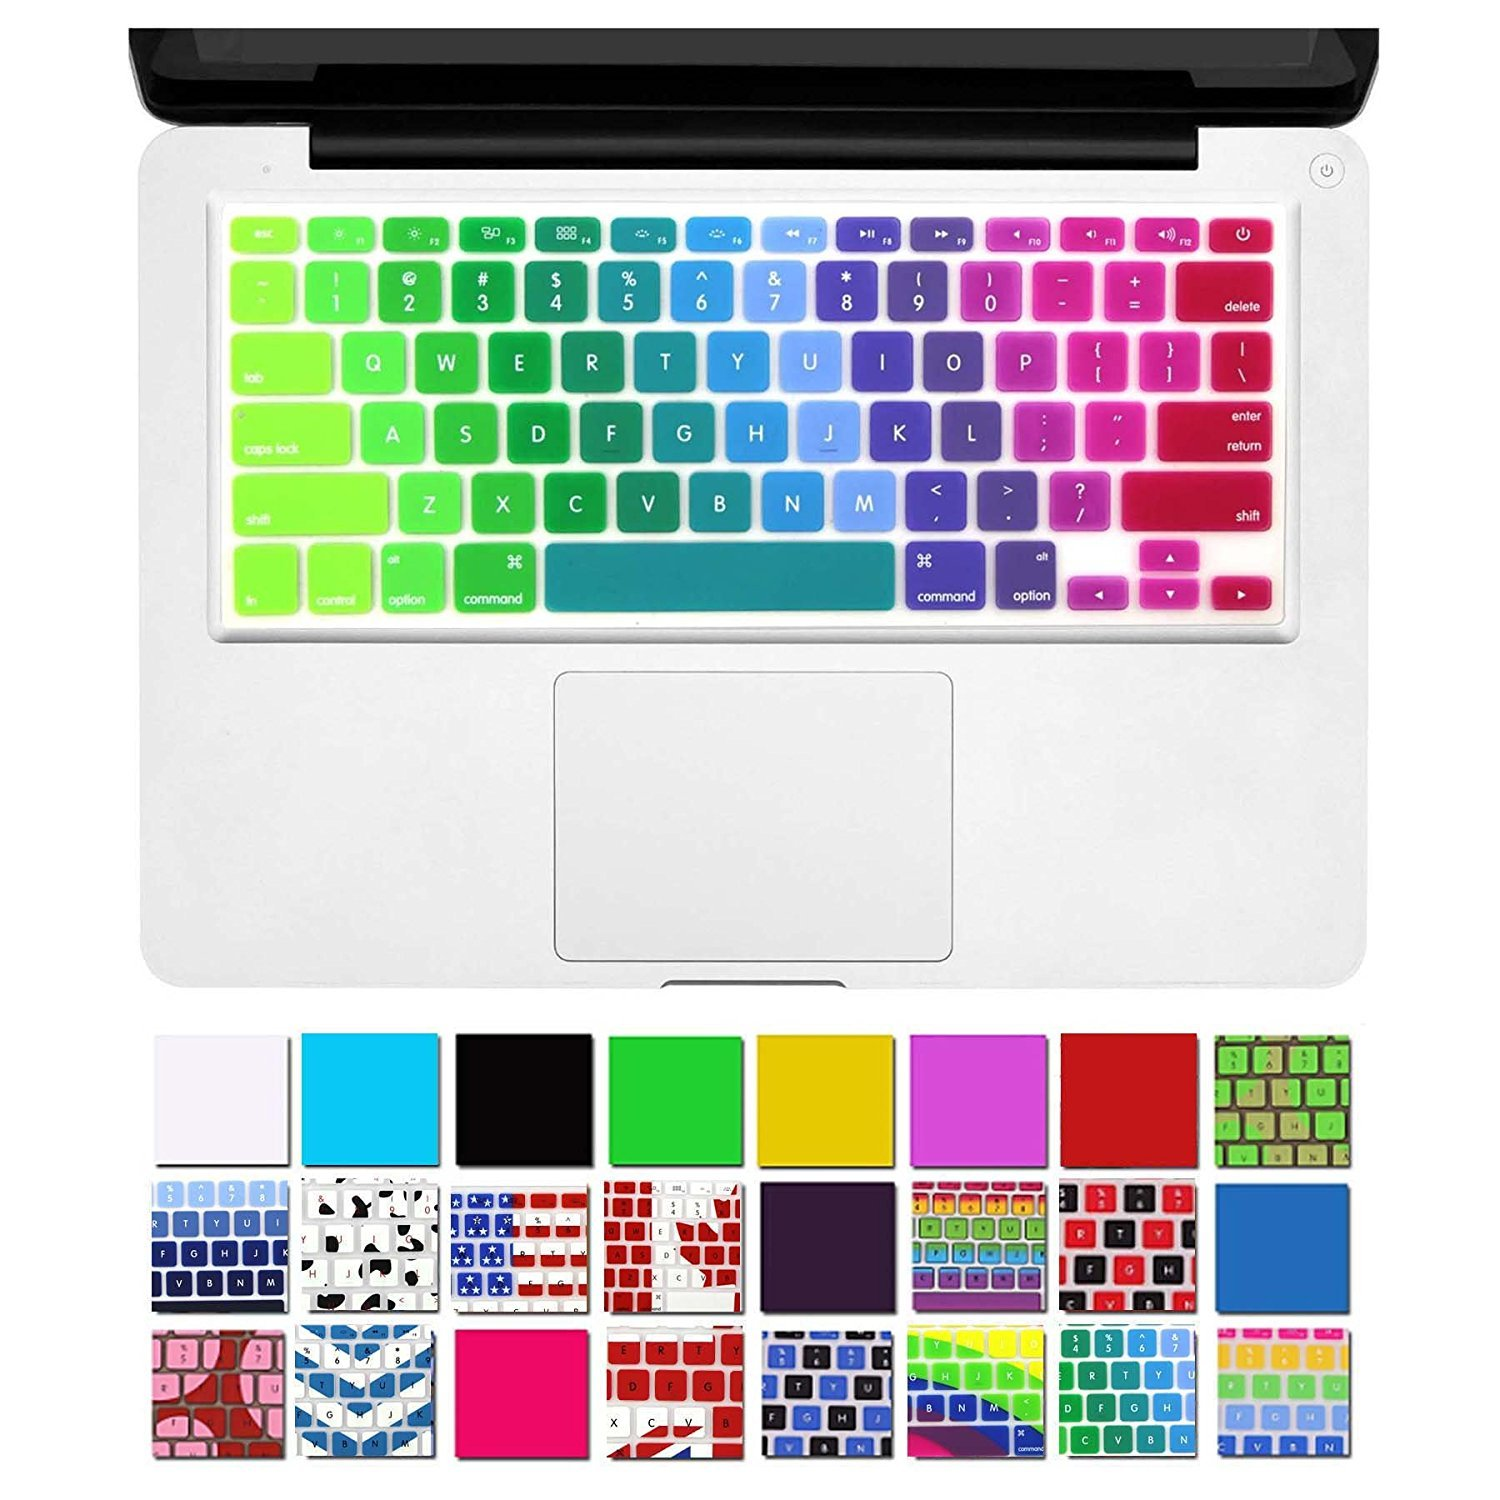 "Dhz Unique Ultra Thin Durable Keyboard Cover Silicone Skin For Mac Book Pro 13"" 15"" 17"" (With Or W/Out Retina Display) I Mac And Mac Book Air 13"" (Rainbow 5) by Dhz"